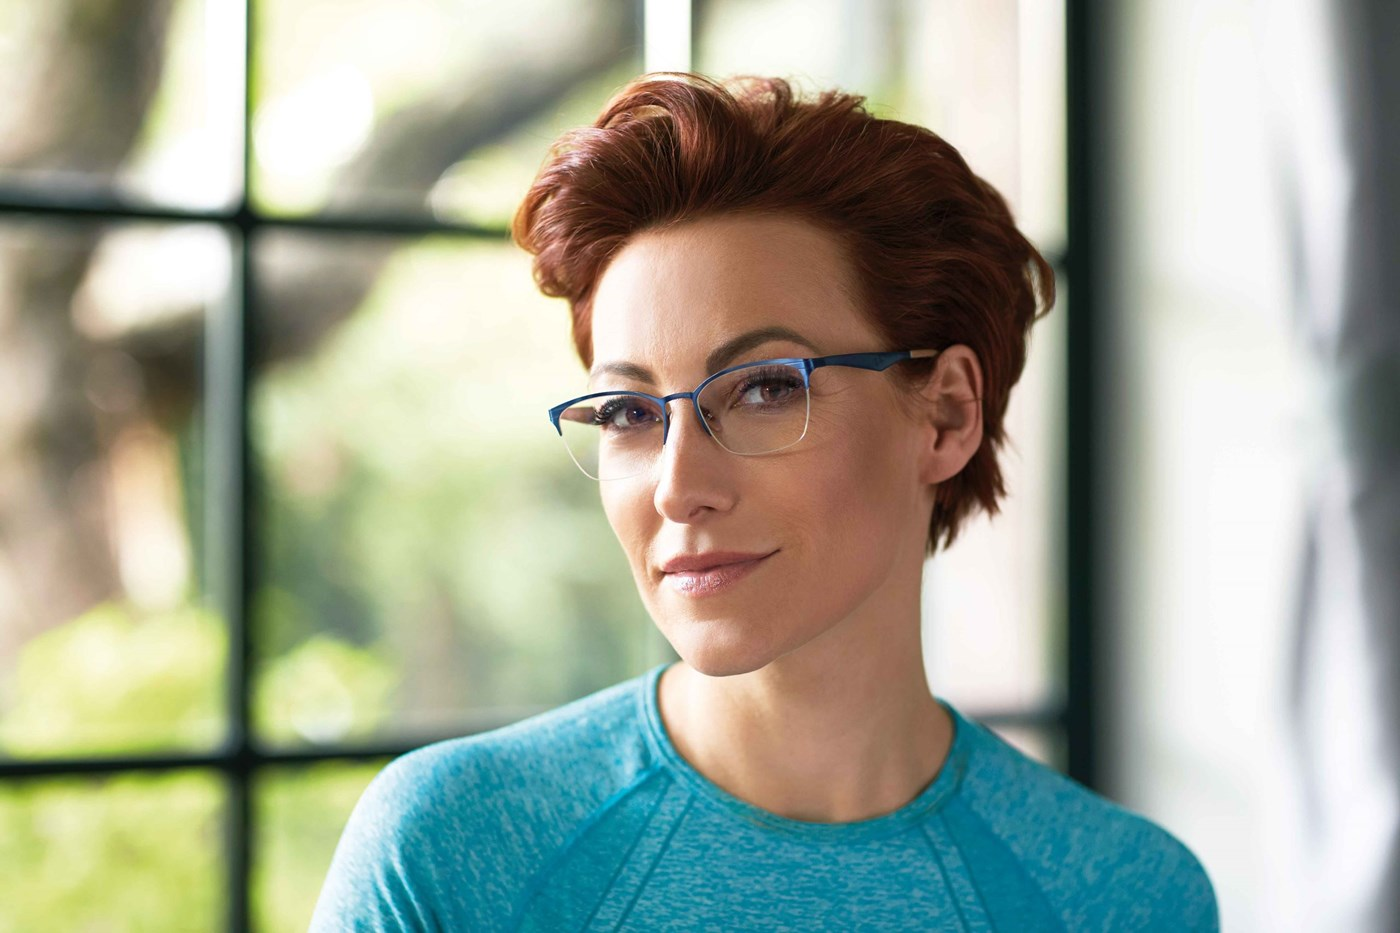 Female in blue top wearing eyeglasses